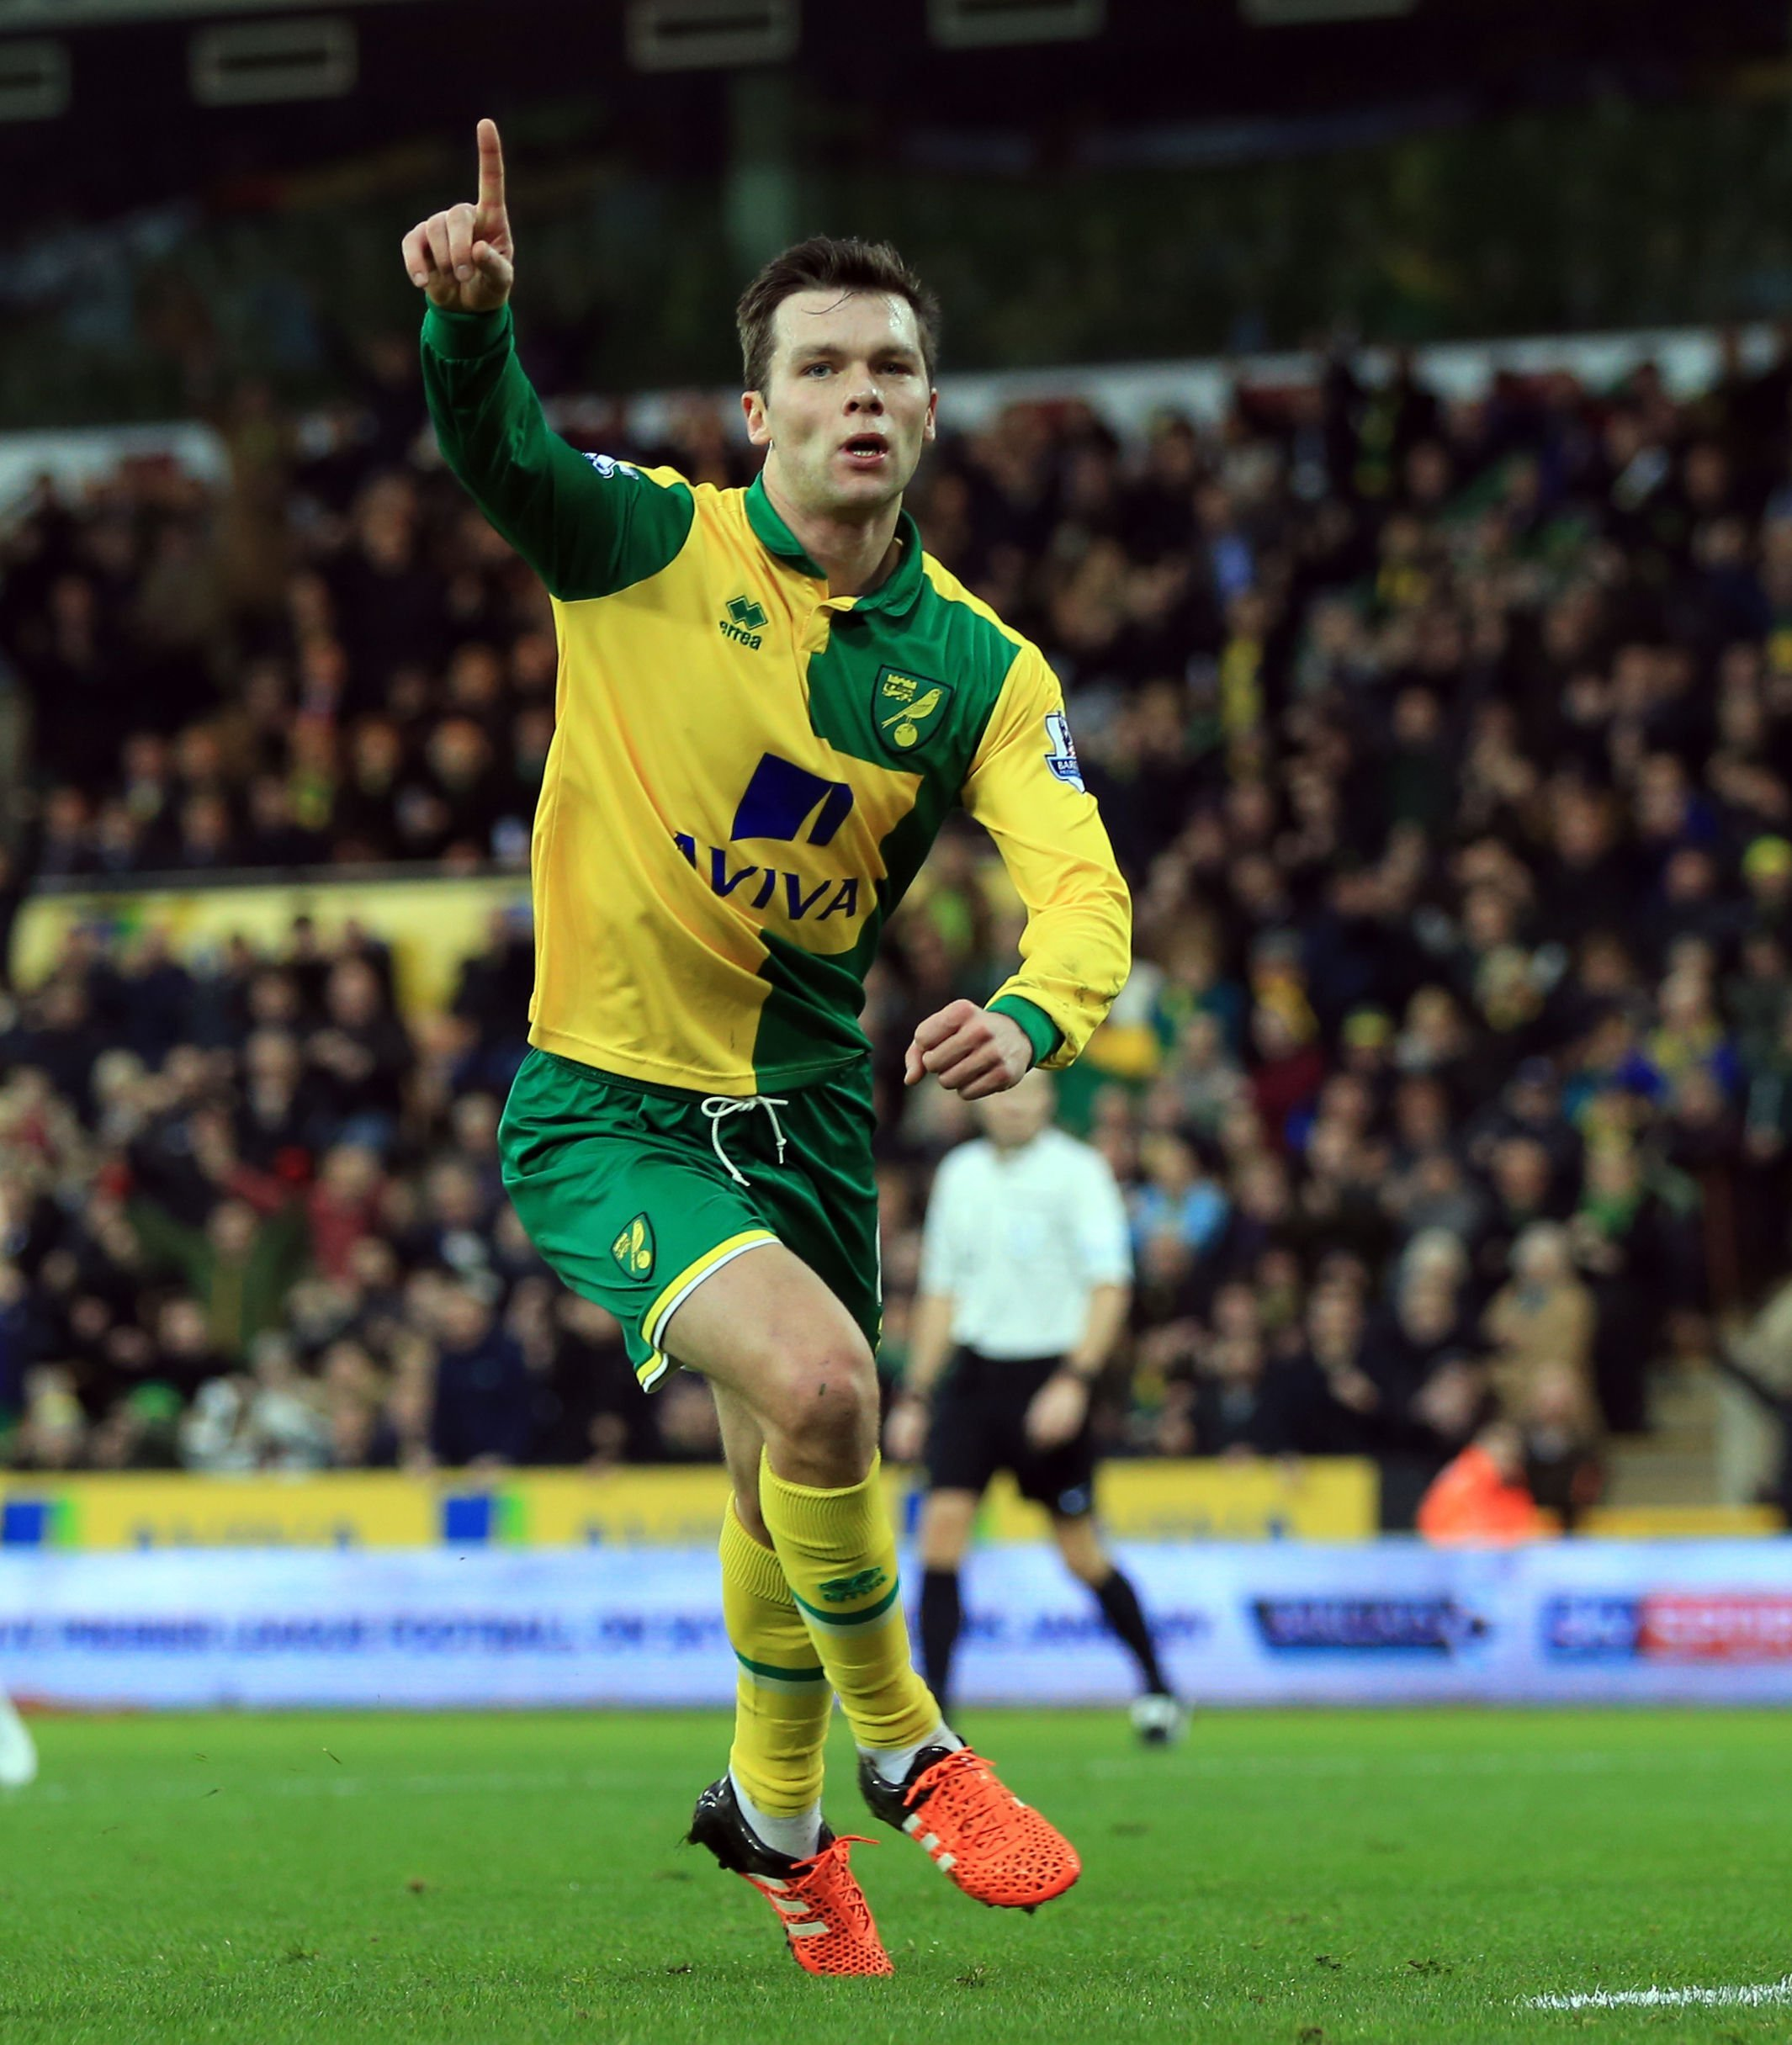 Middlesbrough Announce Double-Signing of Jonny Howson & Cyrus Christie Subject to Medical